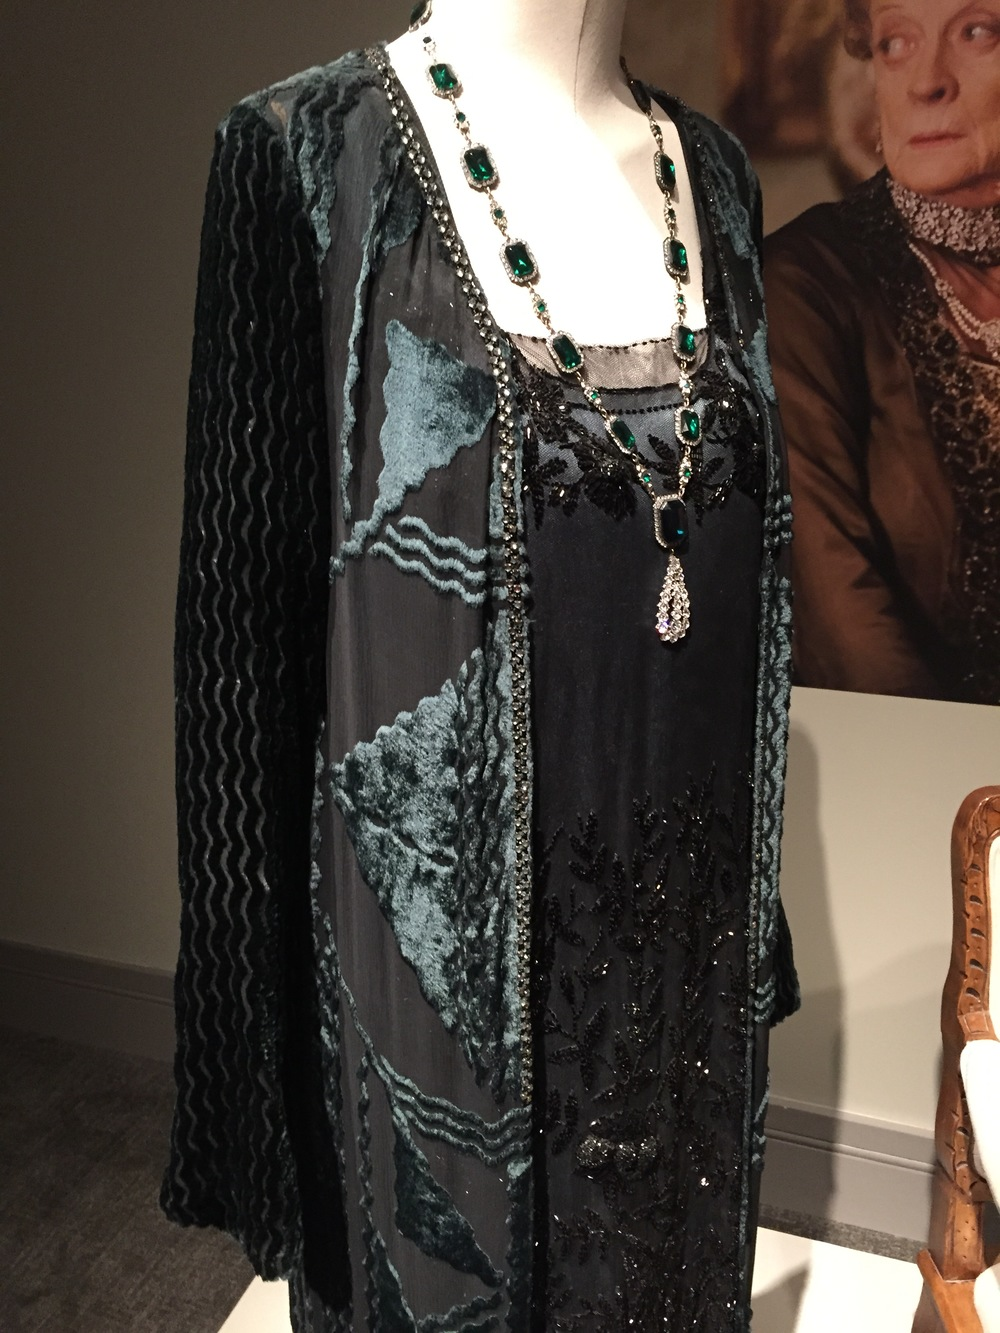 An impeccably detailed Art Deco dress worn by Martha Levinson